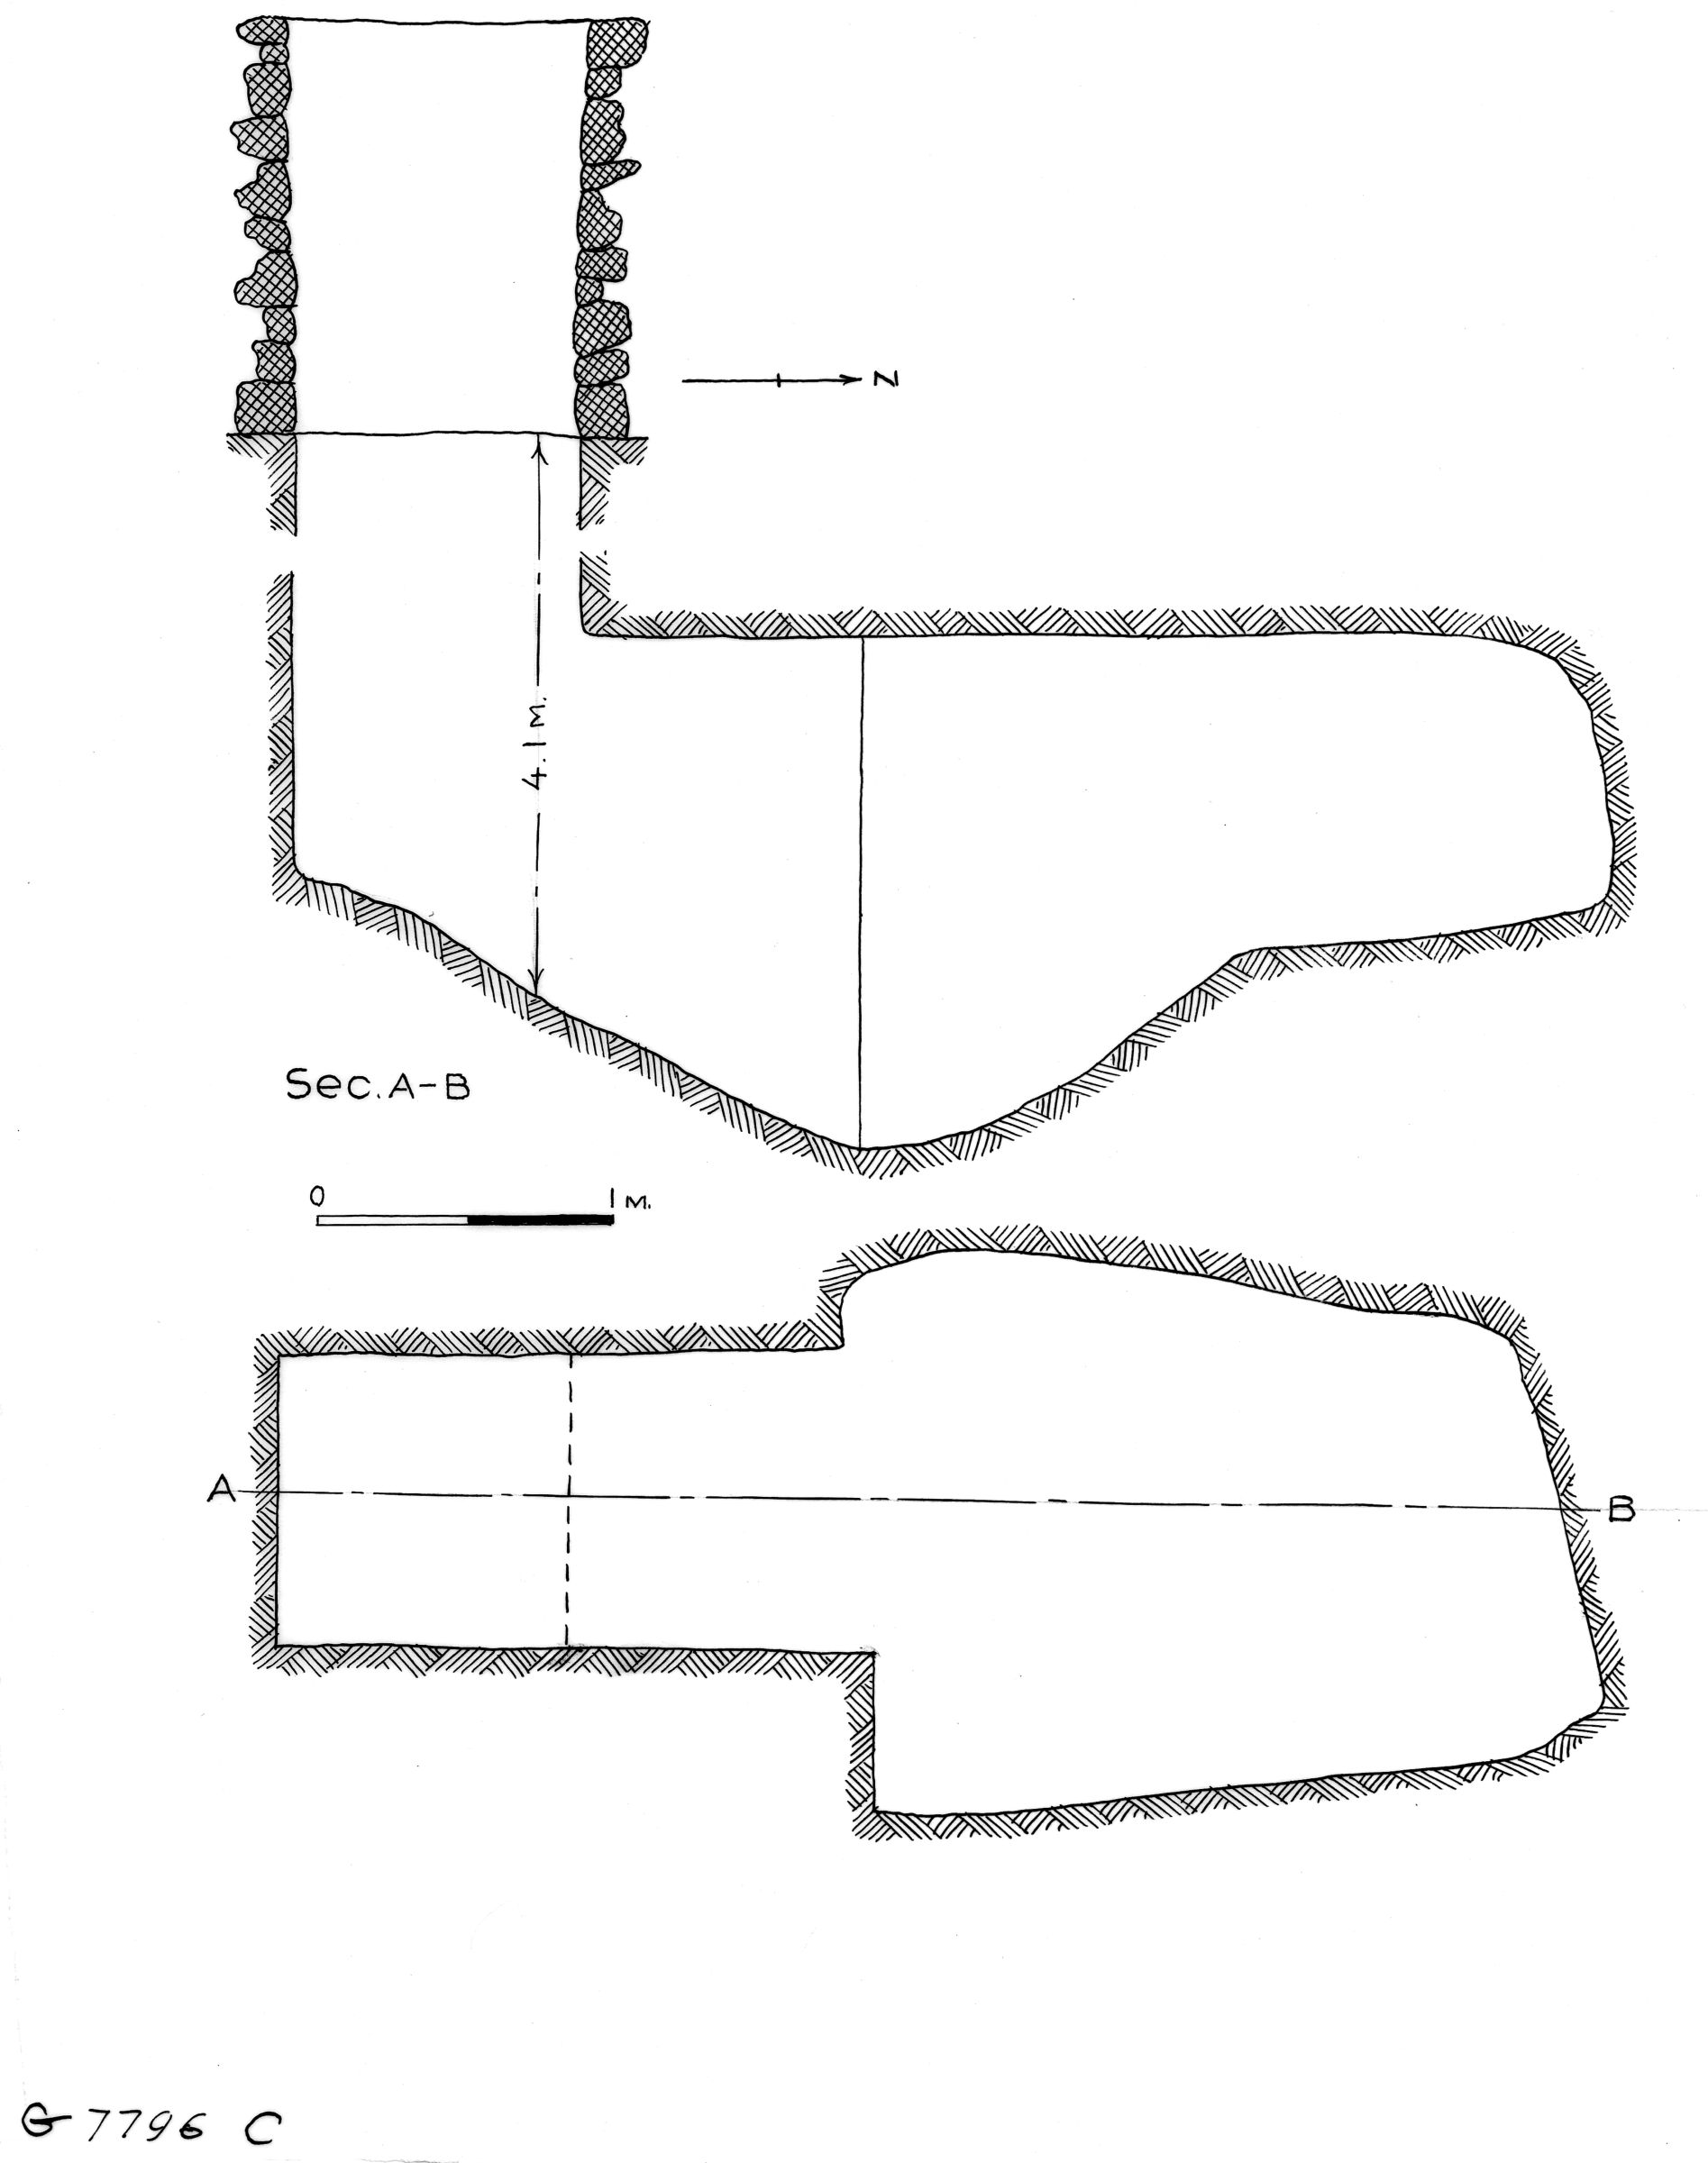 Maps and plans: G 7796, Shaft C